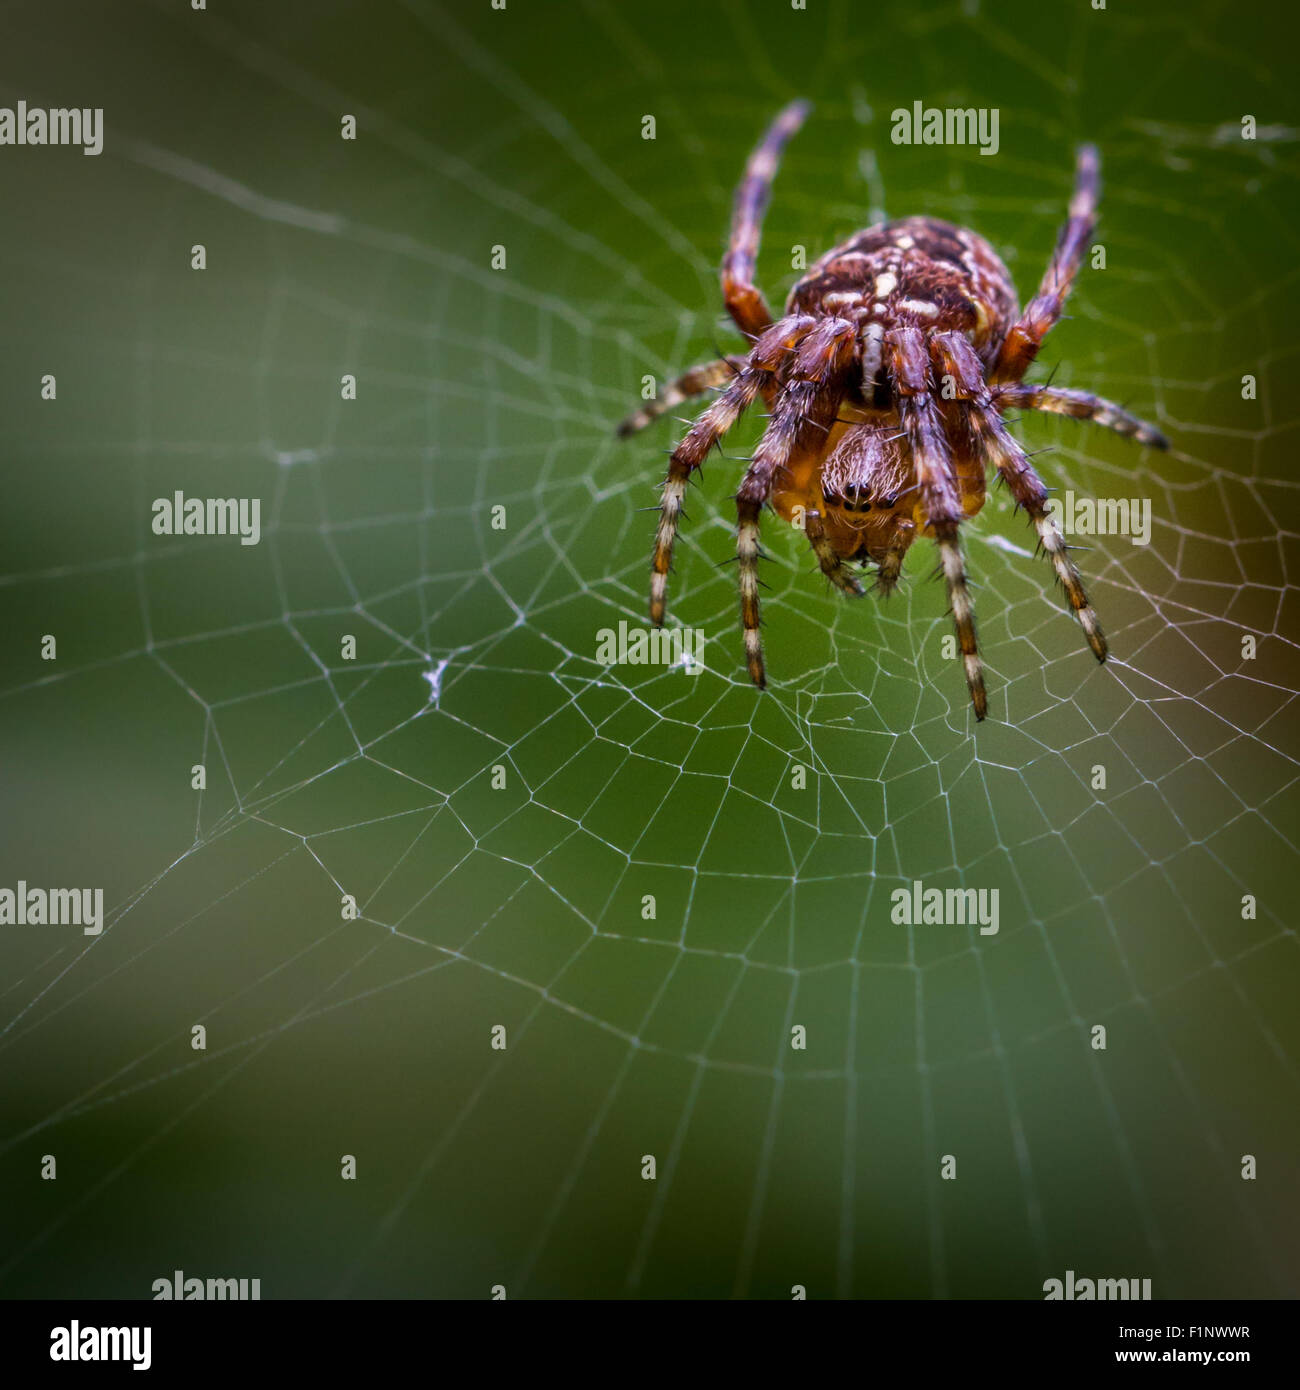 The common garden spider (araneus diadematus) which spins its web overnight has a distinctive cross mark on its - Stock Image